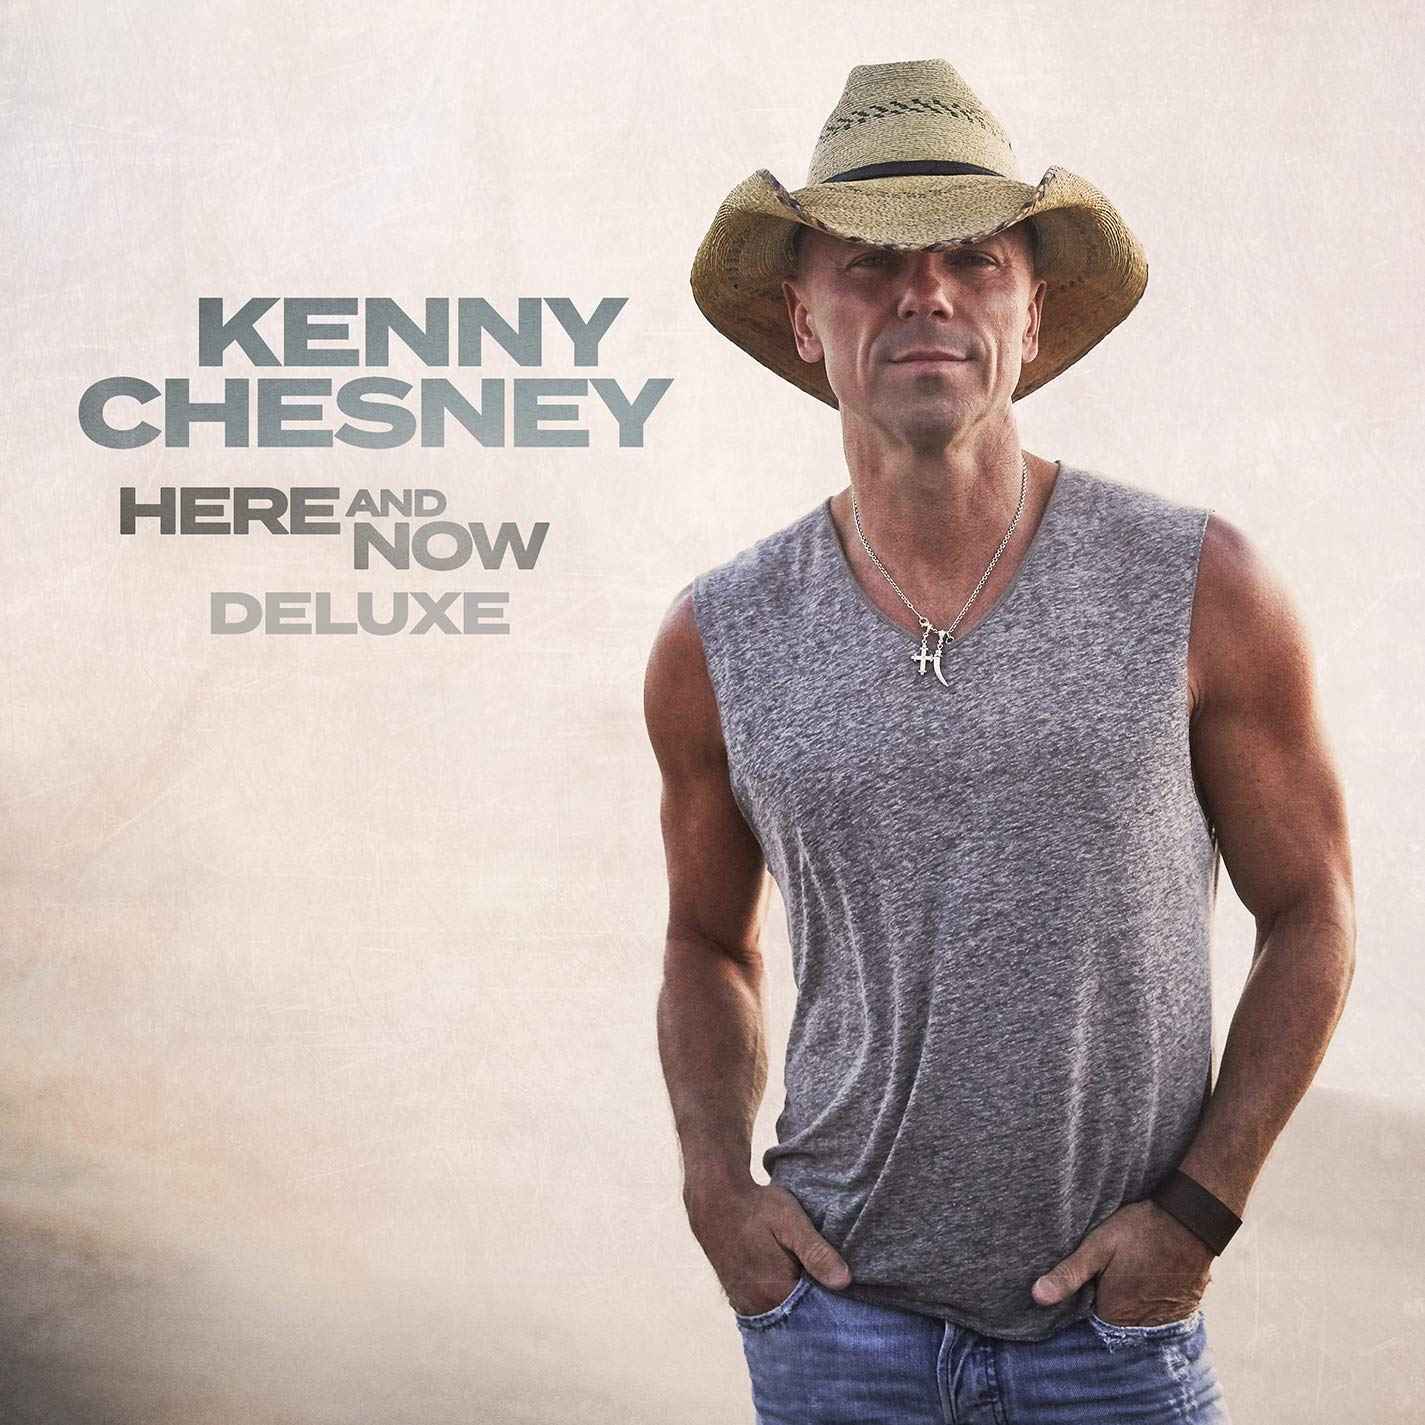 Kenny Chesney - Here And Now (Deluxe)